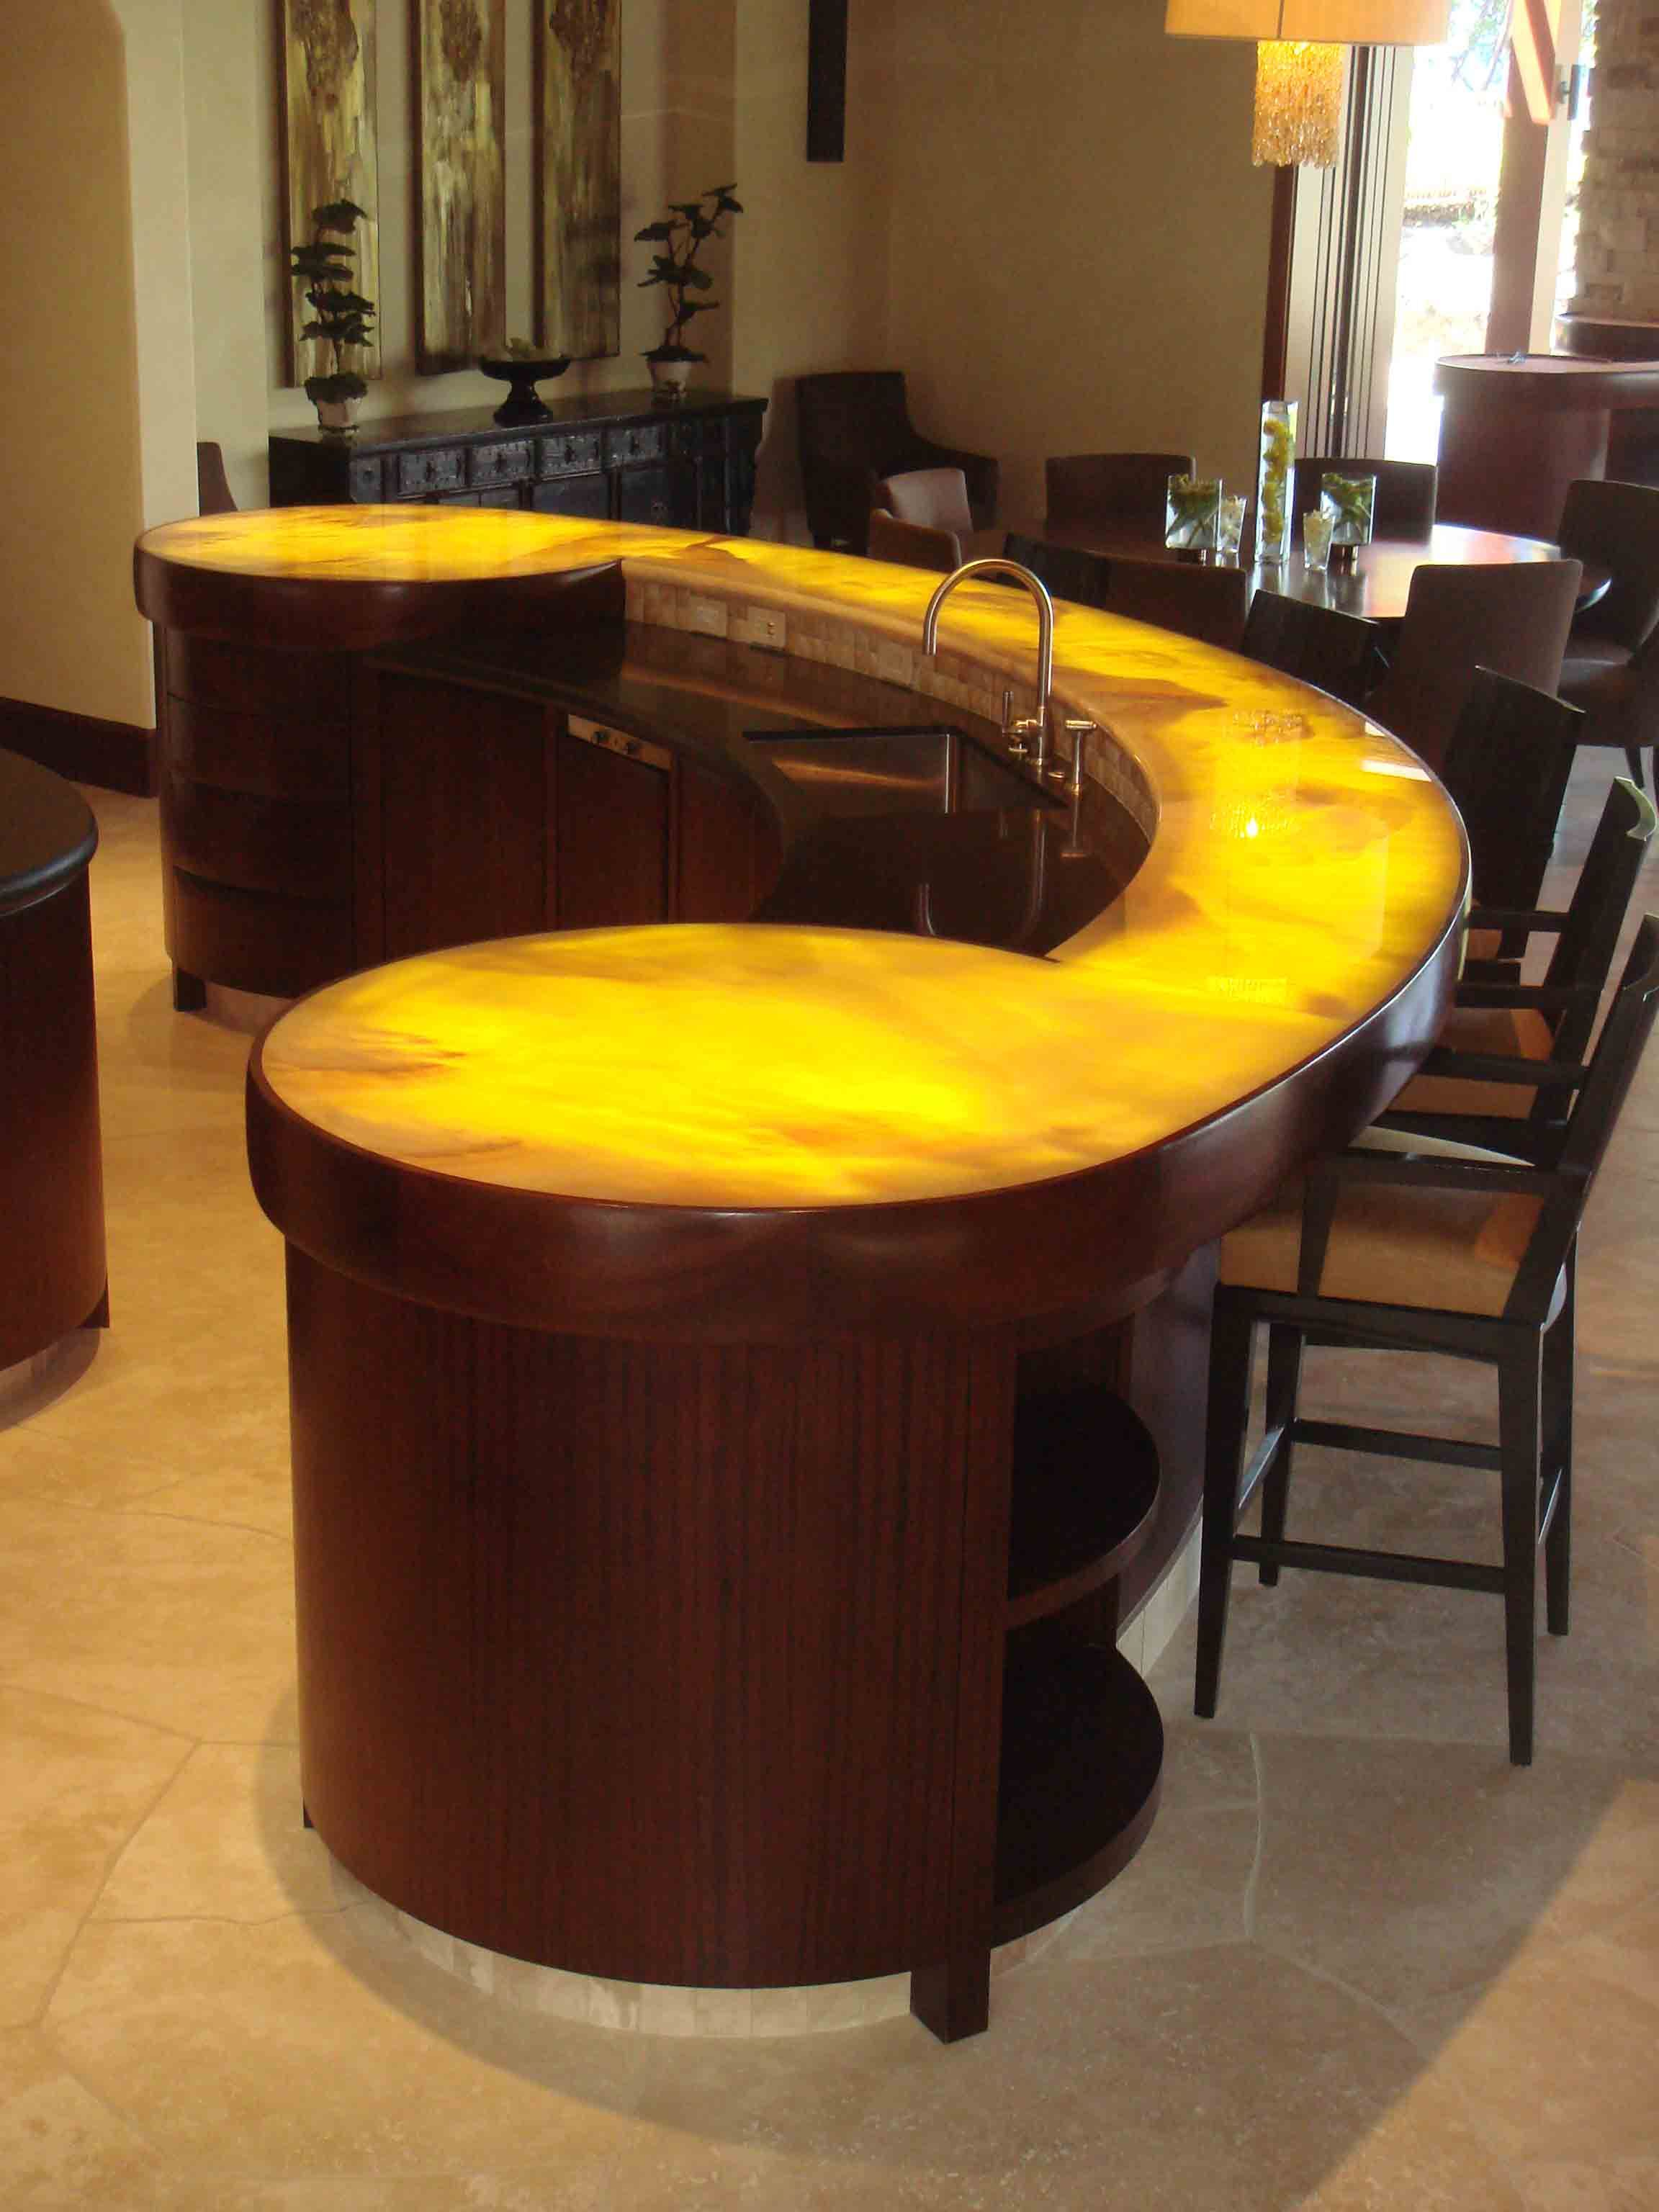 Countertop Bar Designs Fetching Modern Bar Counter Designs For Home Design With